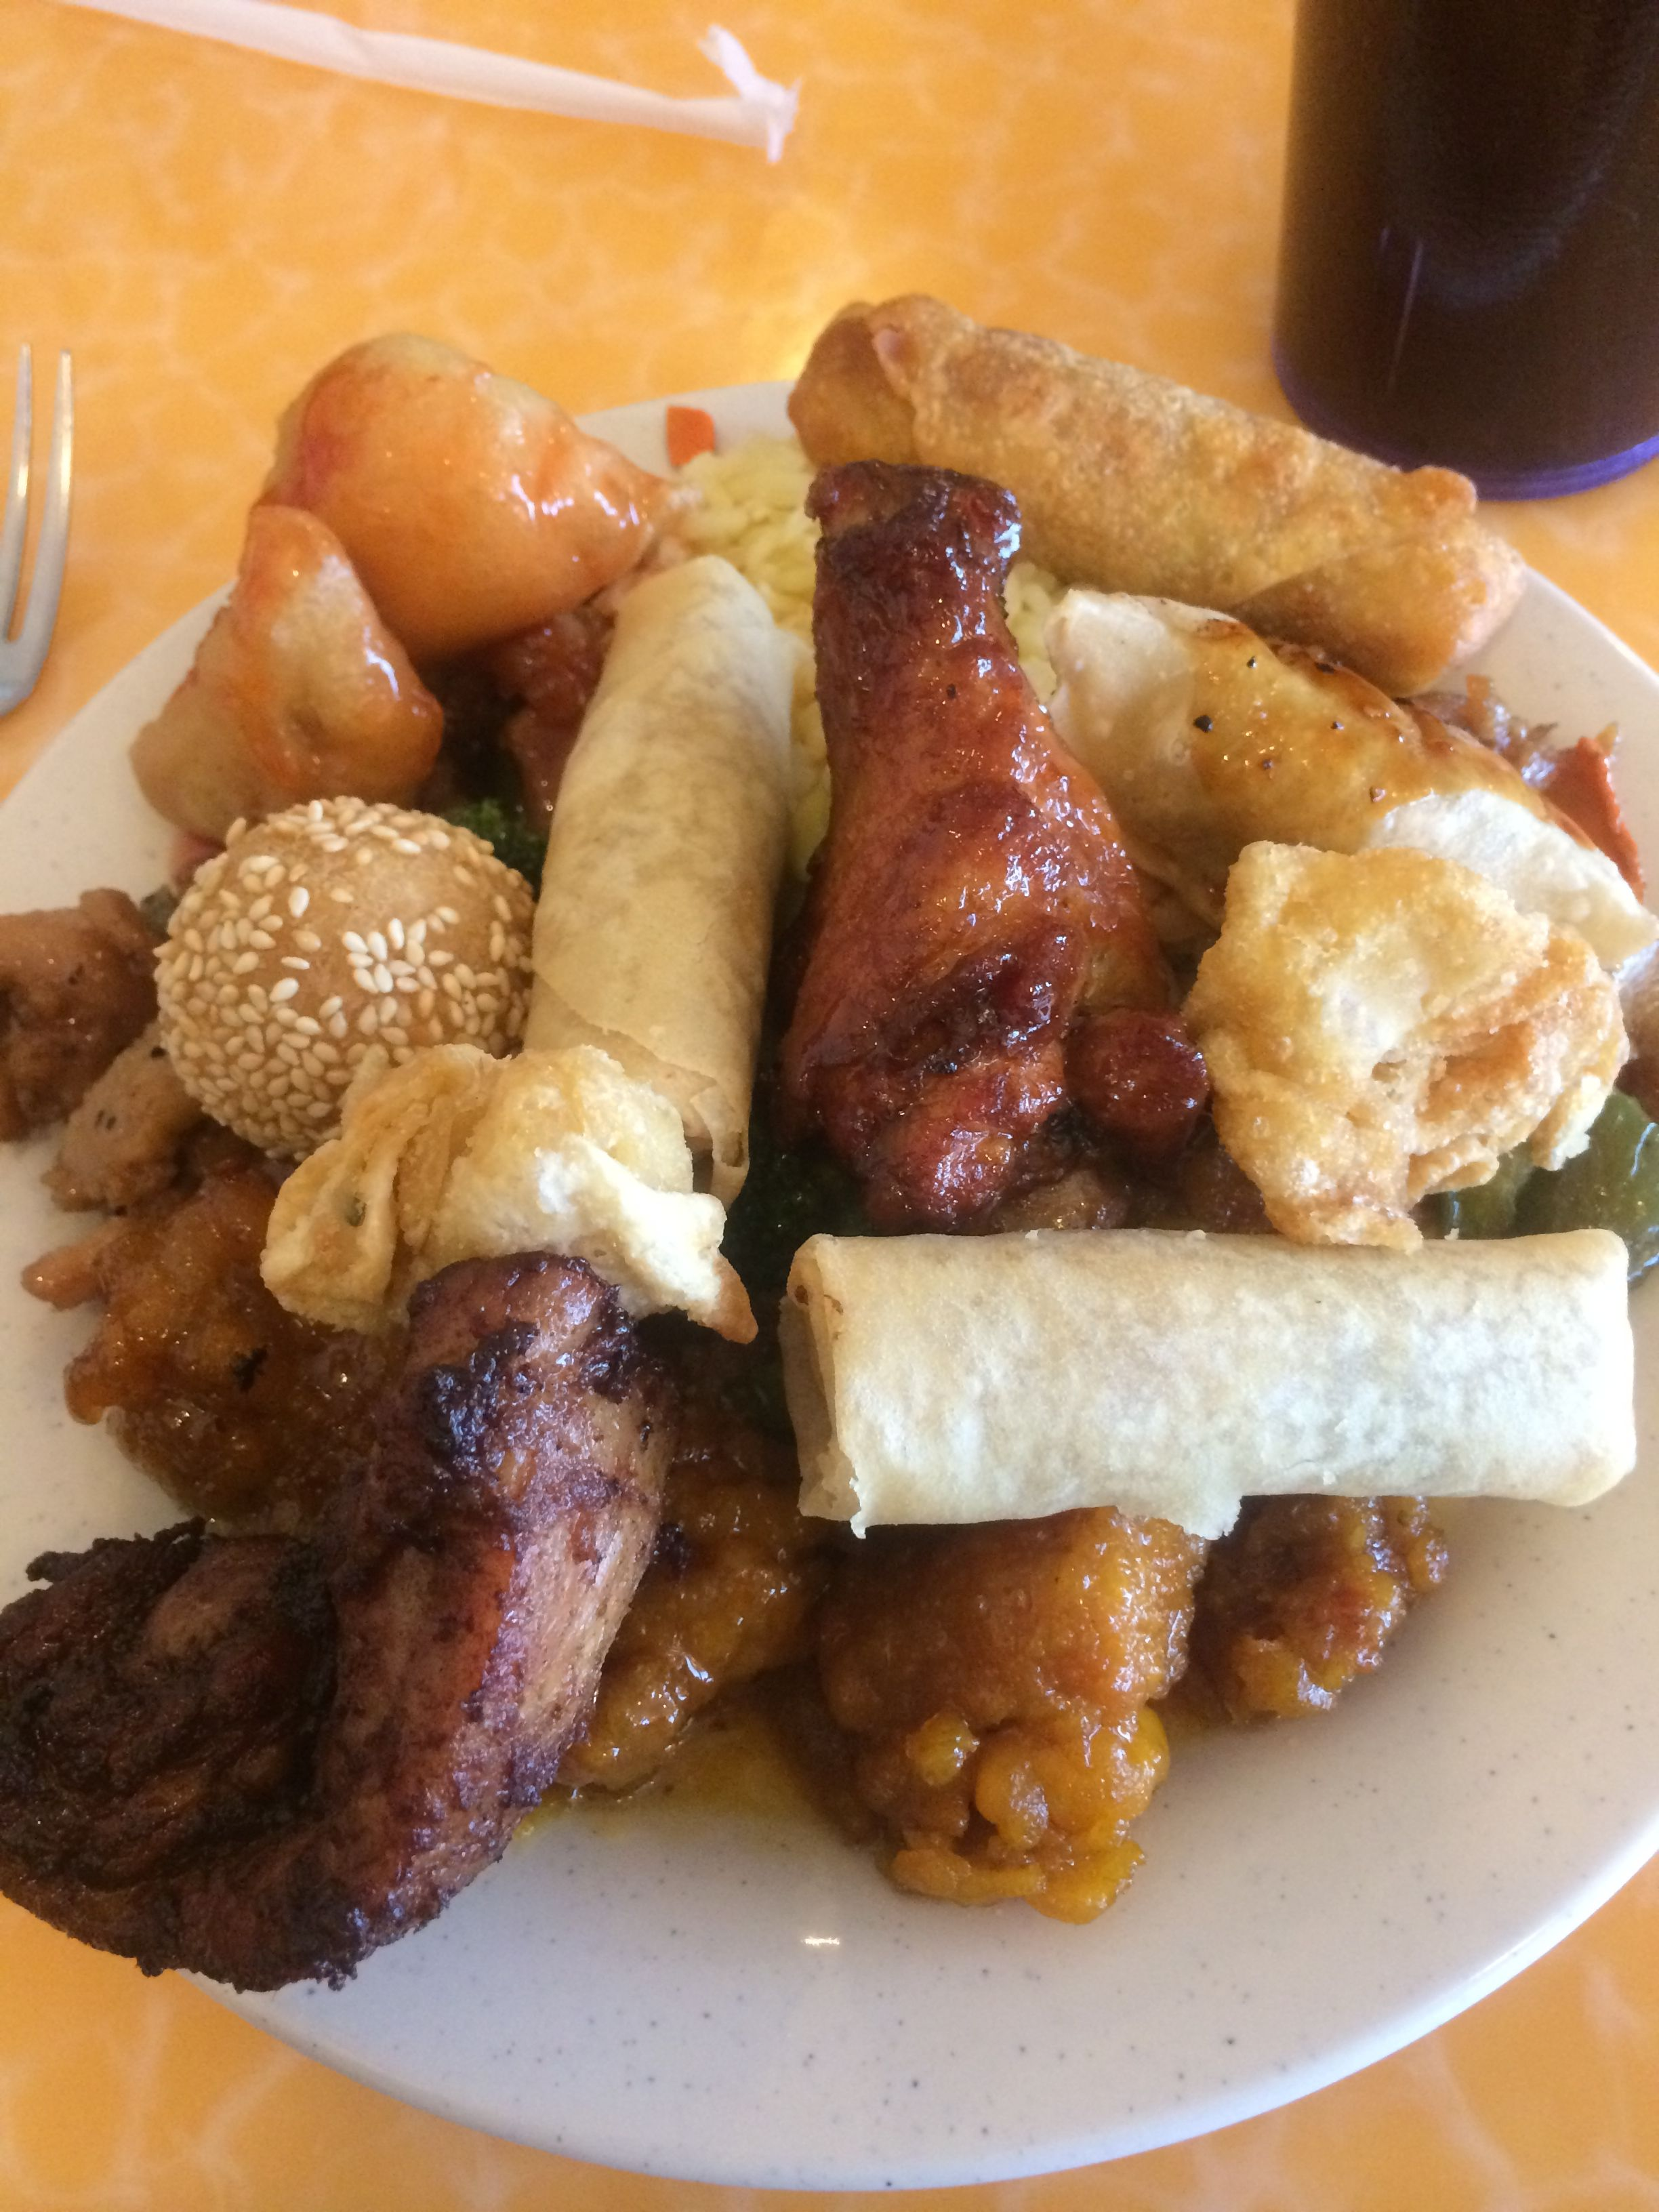 My plate from hitting up the buffet line at New China Buffet in ...